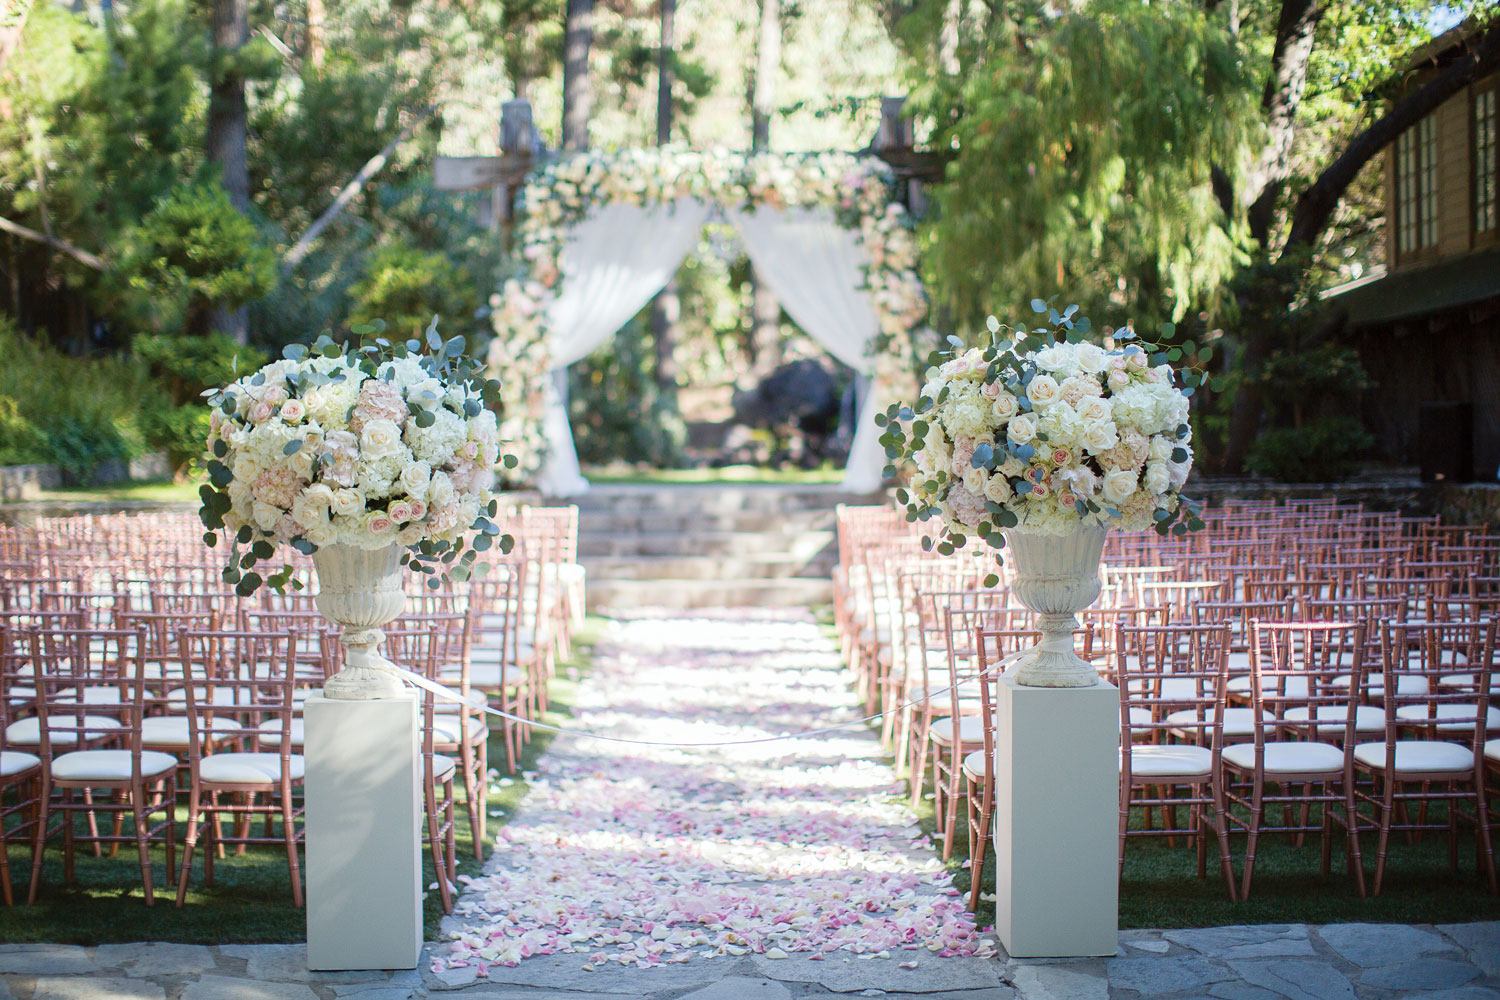 Inside Weddings Summer 2018 issue preview outdoor wedding ceremony rose gold chairs